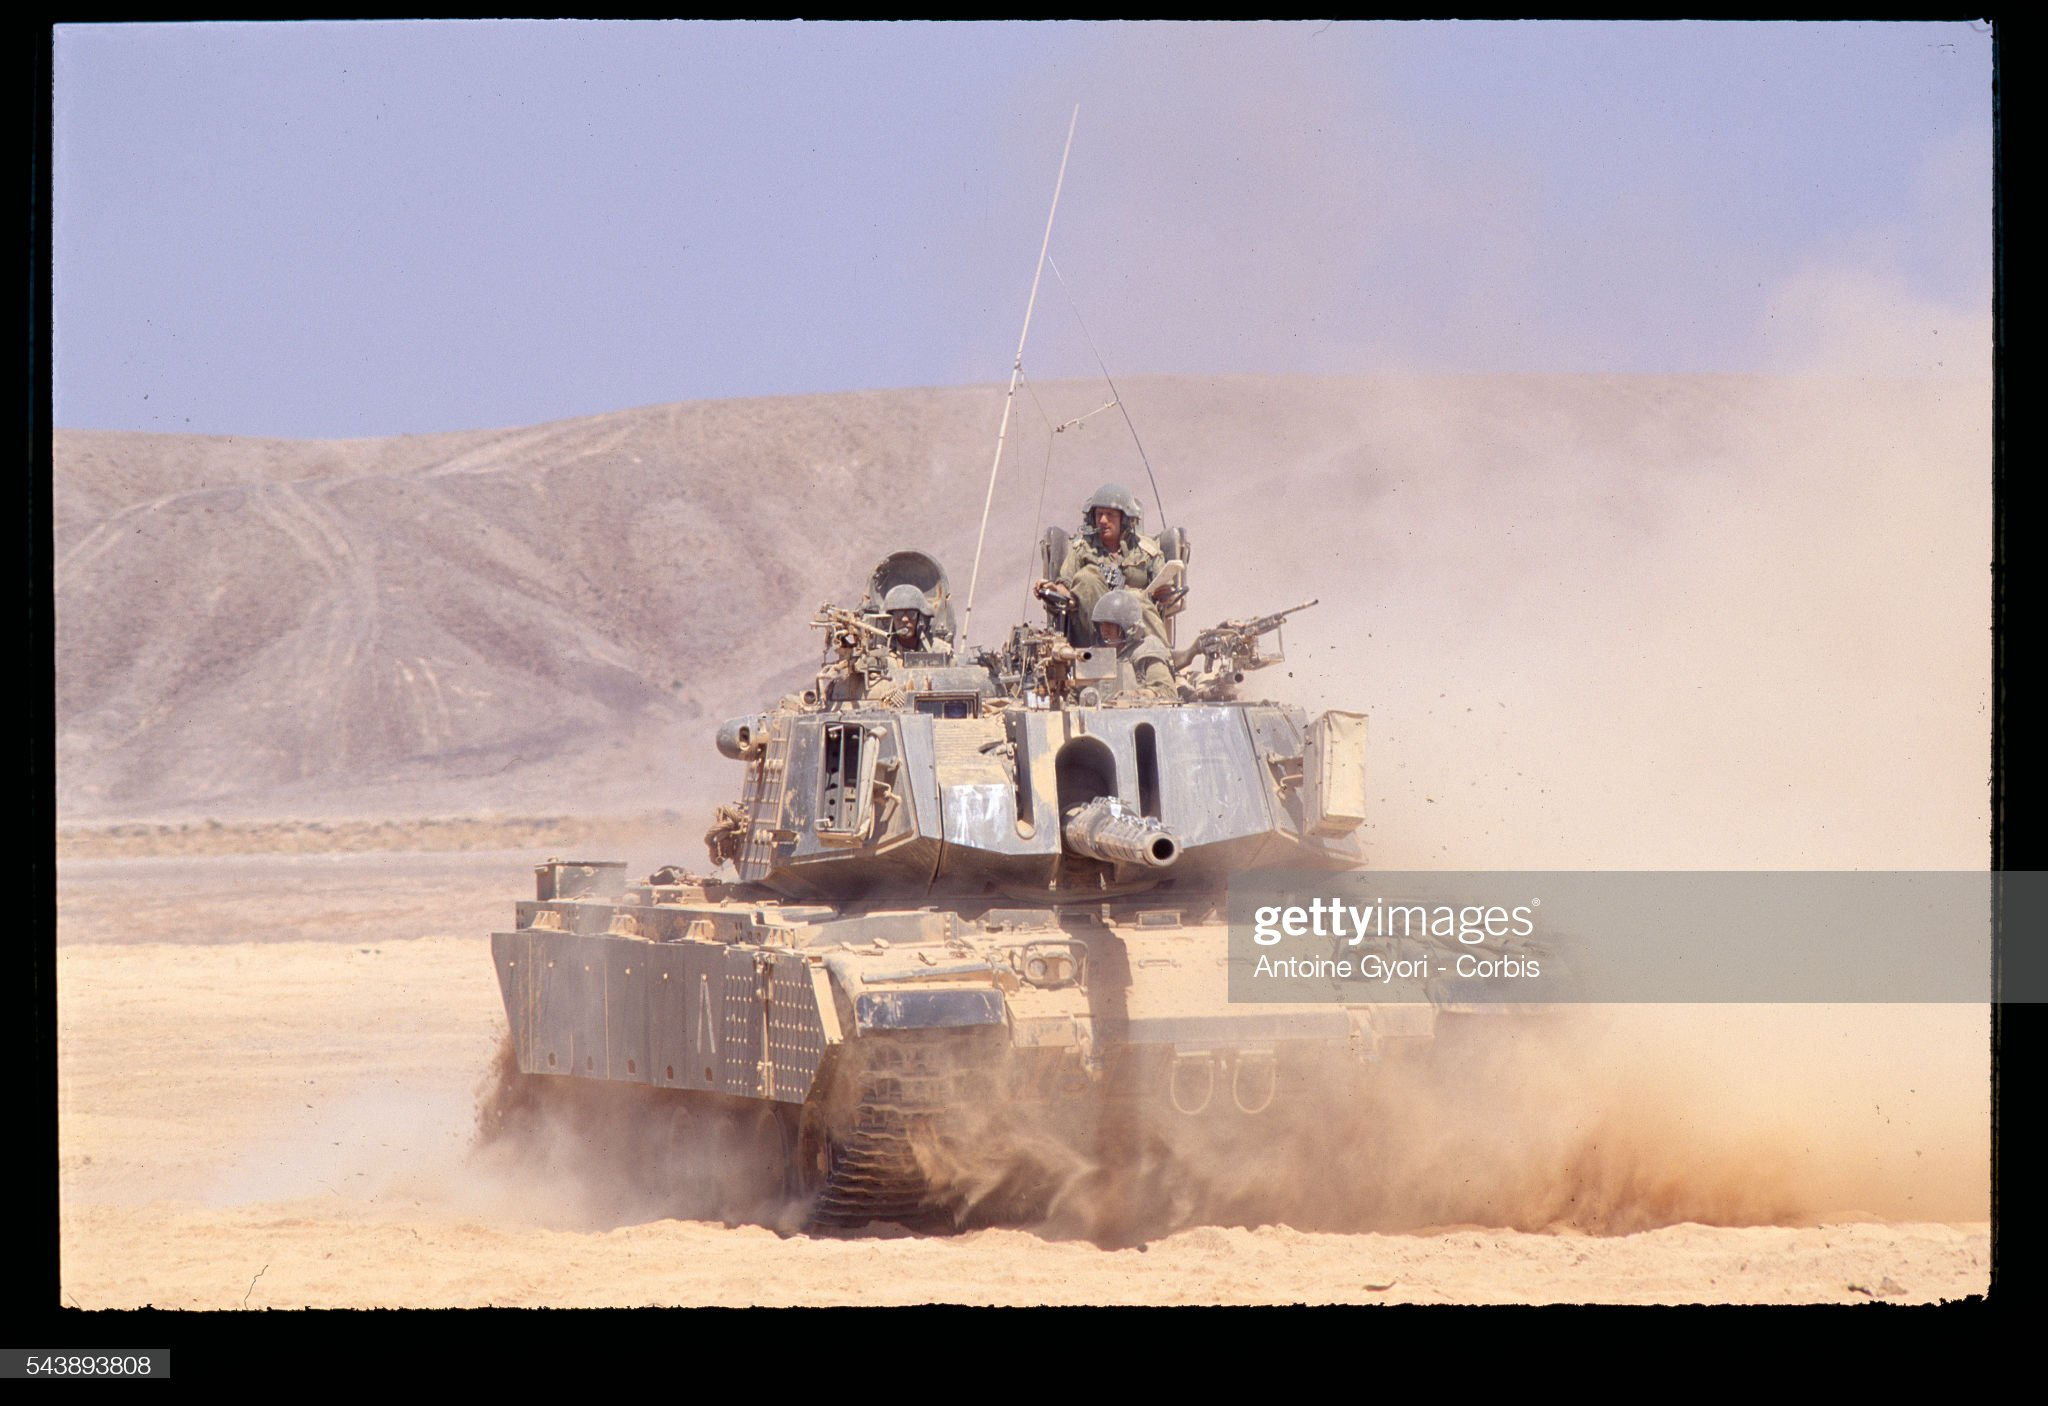 https://media.gettyimages.com/photos/israel-tank-trials-in-the-negev-desert-location-israel-southern-picture-id543893808?s=2048x2048